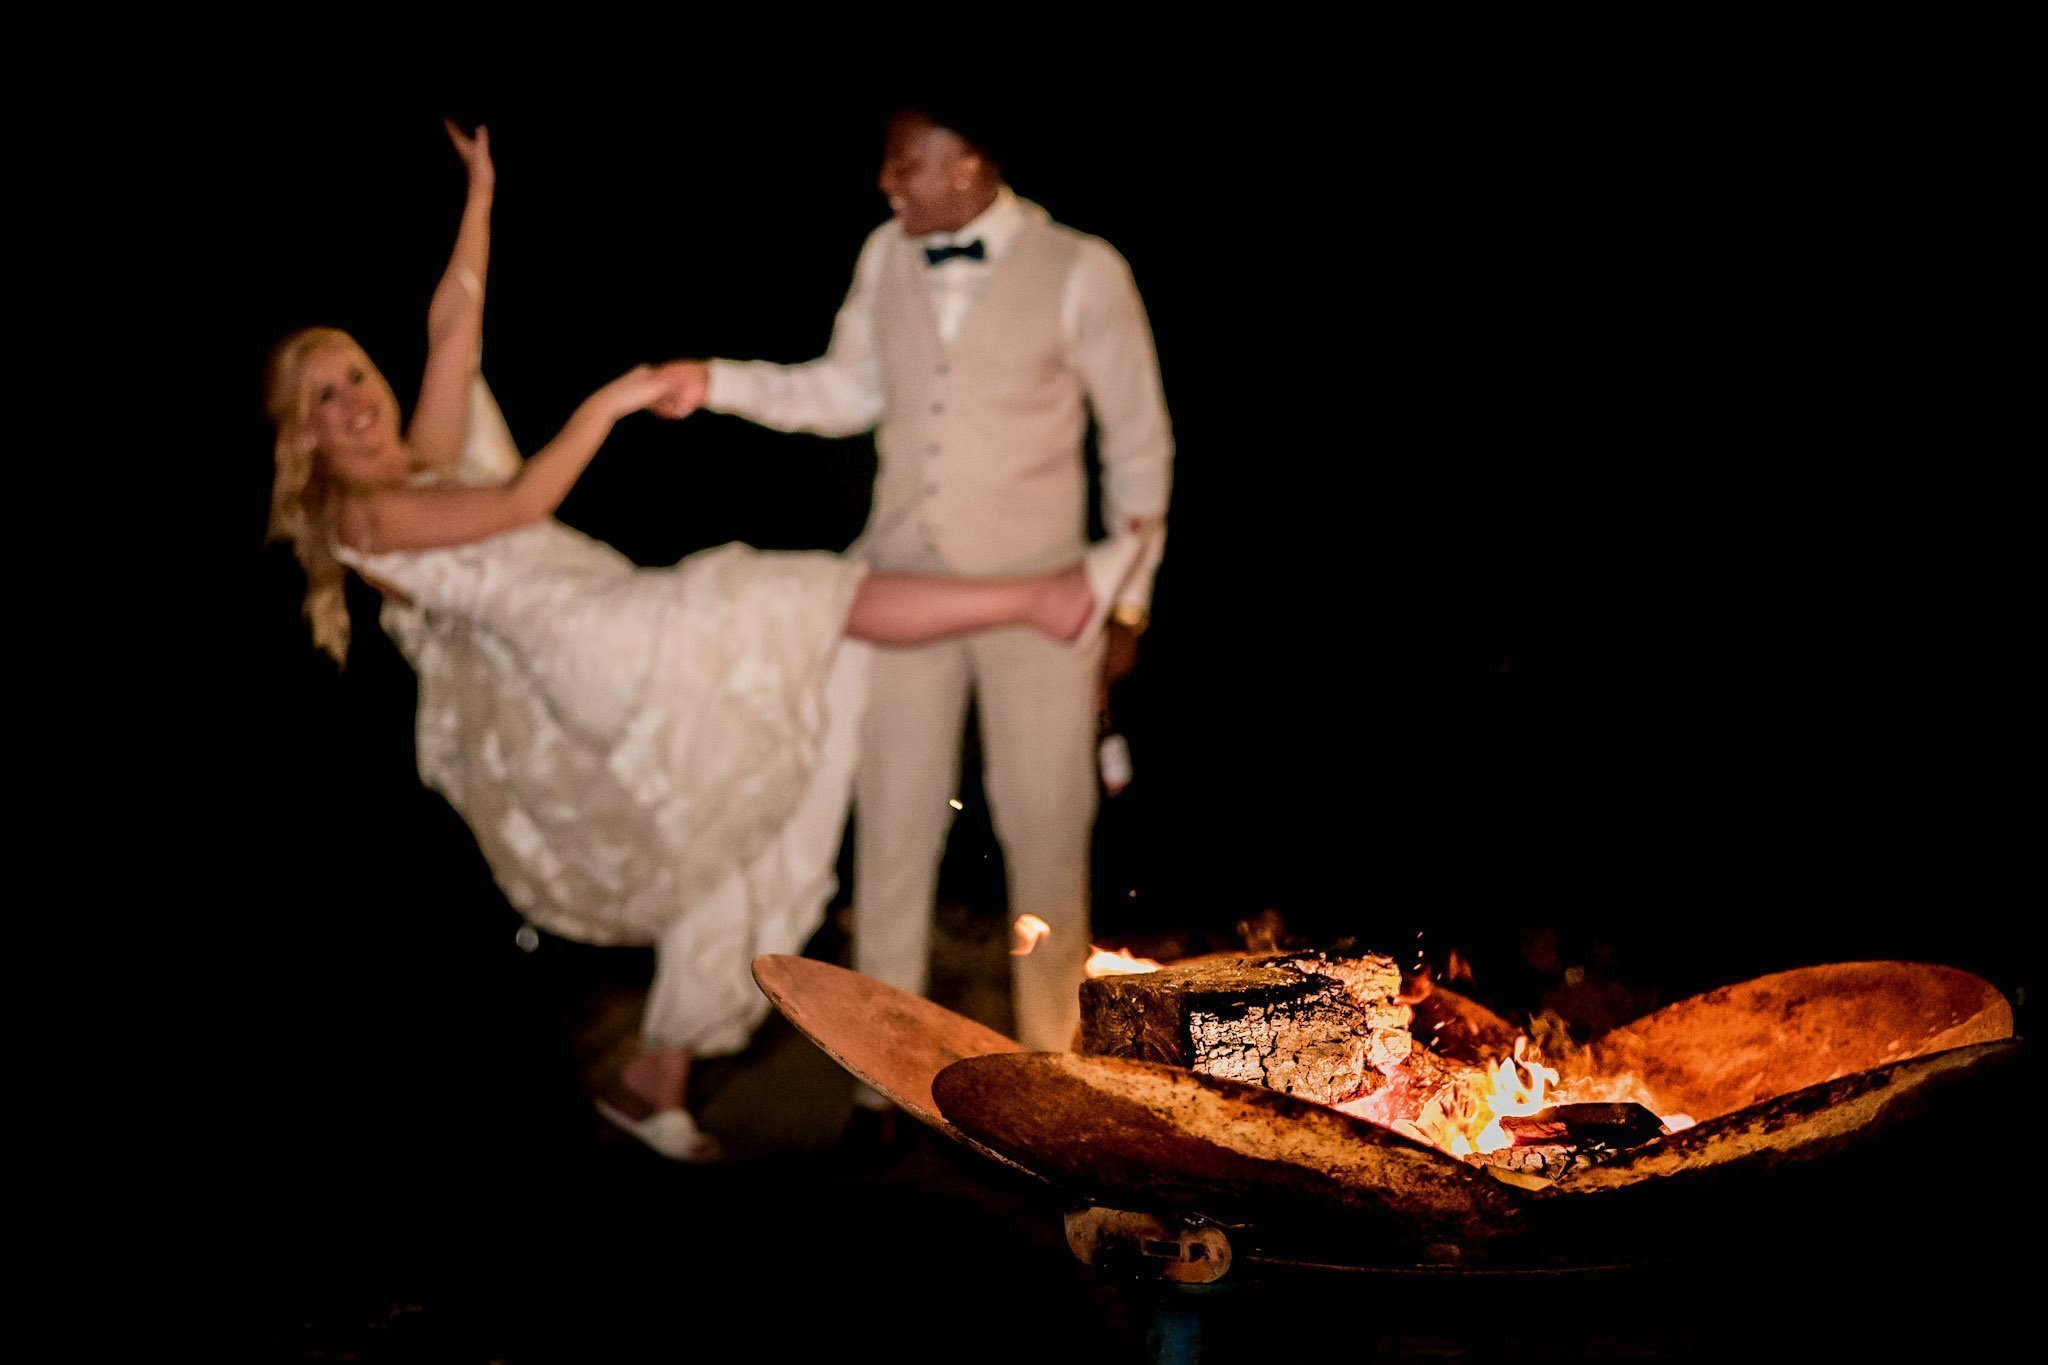 Your Favourite Frame YFFUK Mwasuku Norton Fields Atherstone groom holding his brides hand as she swoops down in front of the fire pits